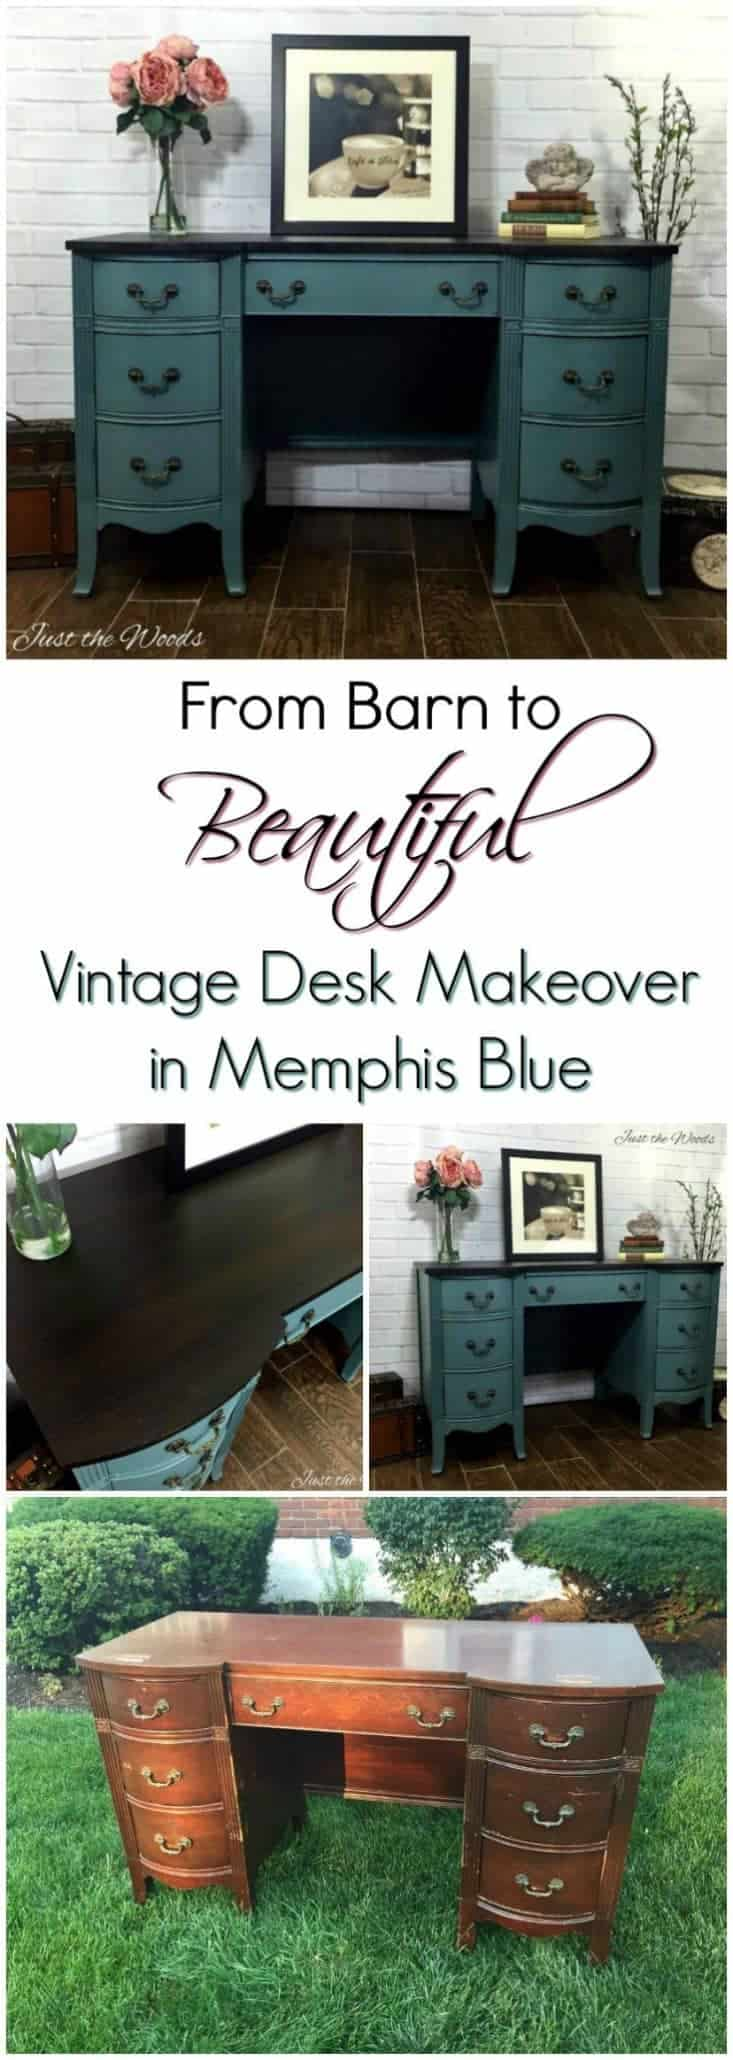 A vintage desk saved from an old barn in upstate New York received a royal treatment in Memphis Blue. This painted desk looks amazing after its painted furniture makeover. #paintedfurniture #painteddesk #furnituremakeover #paintedfurnitureideas #bluepainteddesk #lightbluepaintedfurniture